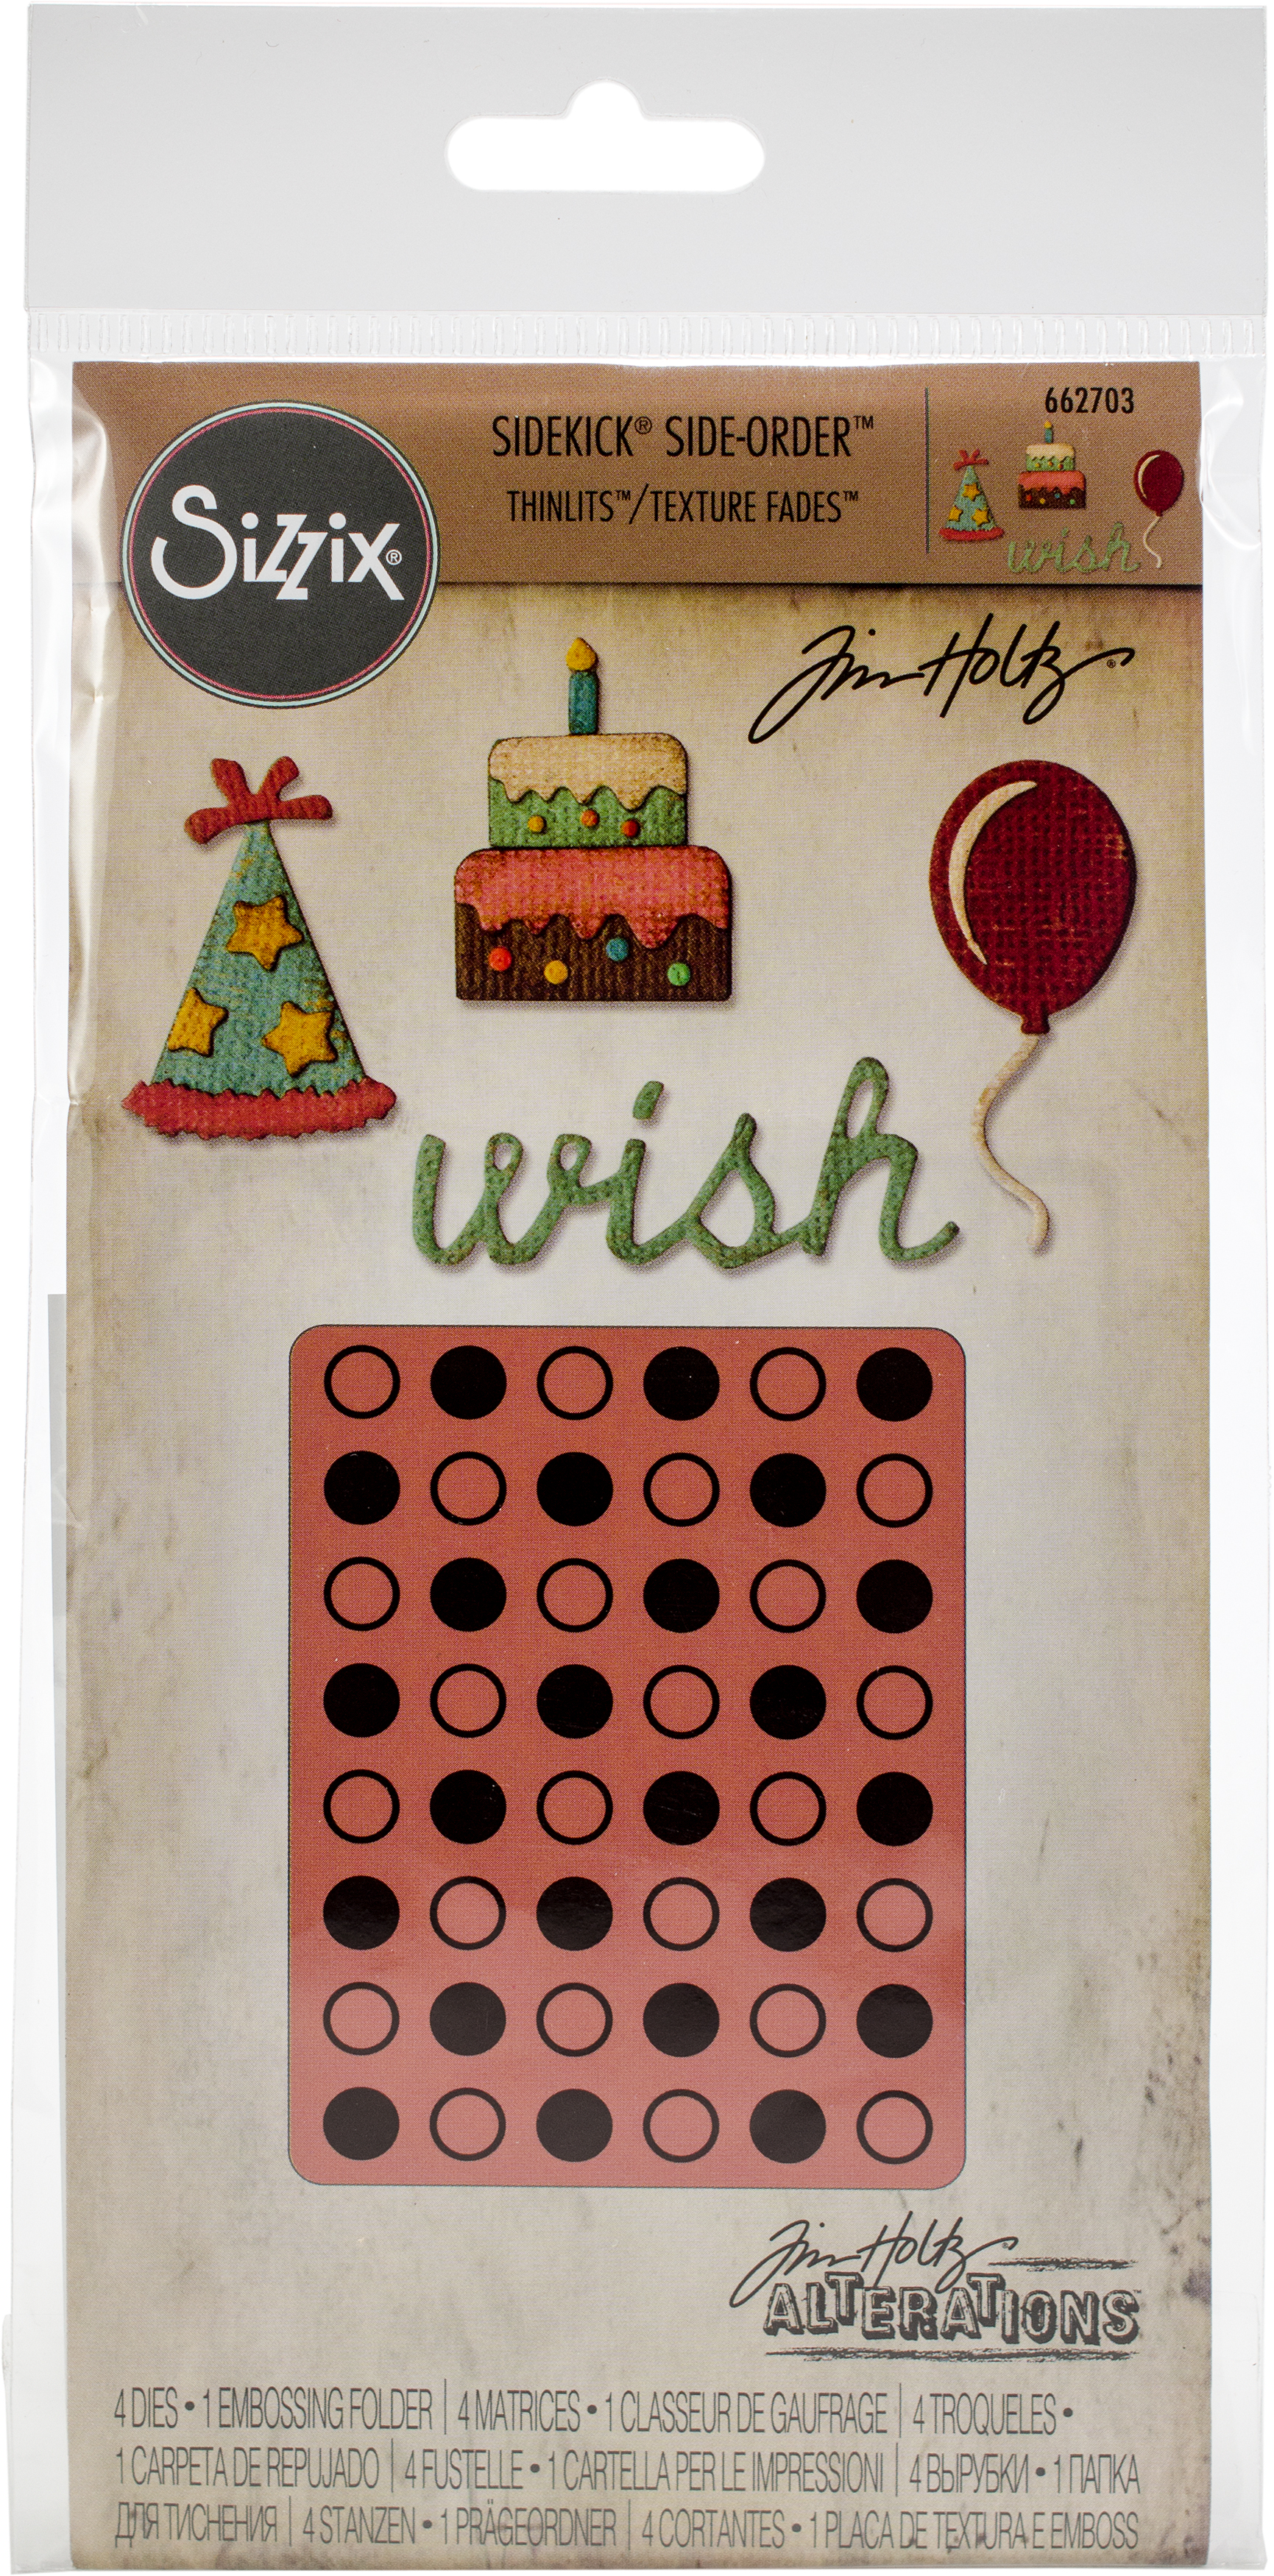 Sizzix Sidekick Side-Order Set By Tim Holtz-Birthday